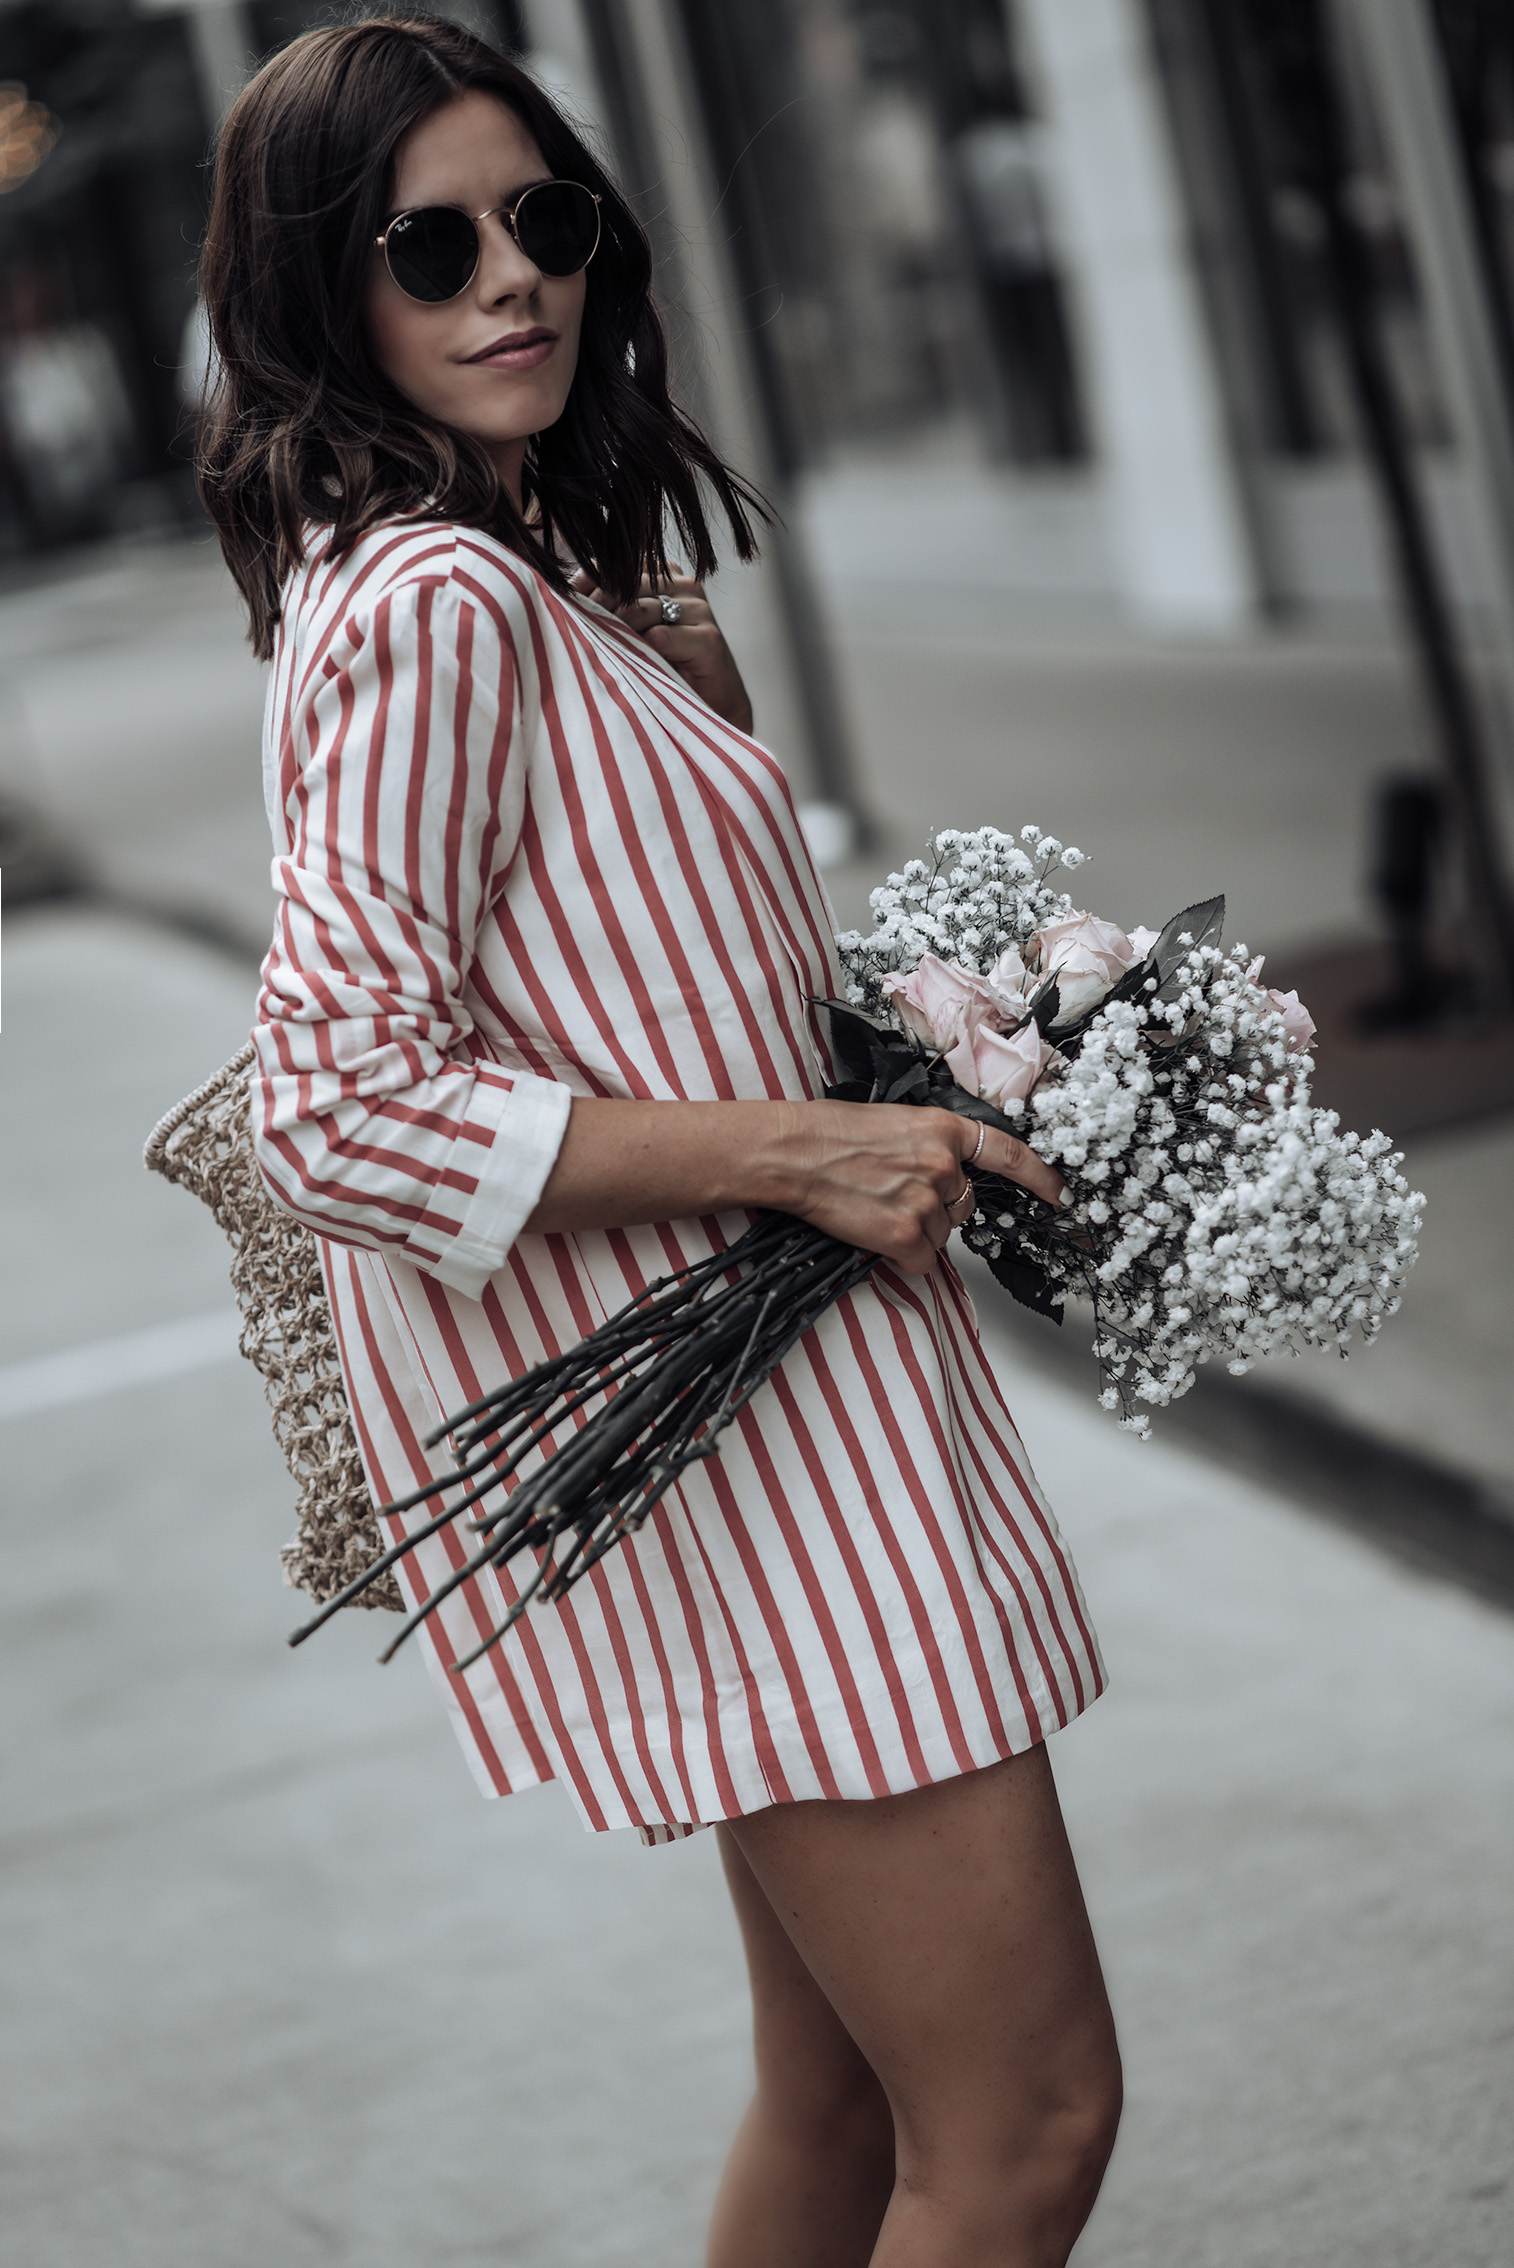 Striped Blazer set | L'Academie Adam Shorts | L'Academie Adam Blazer | Reformation bag | Superga Platform Sneakers | Bracelets: Here, & here | #liketkit #revolve #strawbag #lookbook #fashion #streetstyleblog